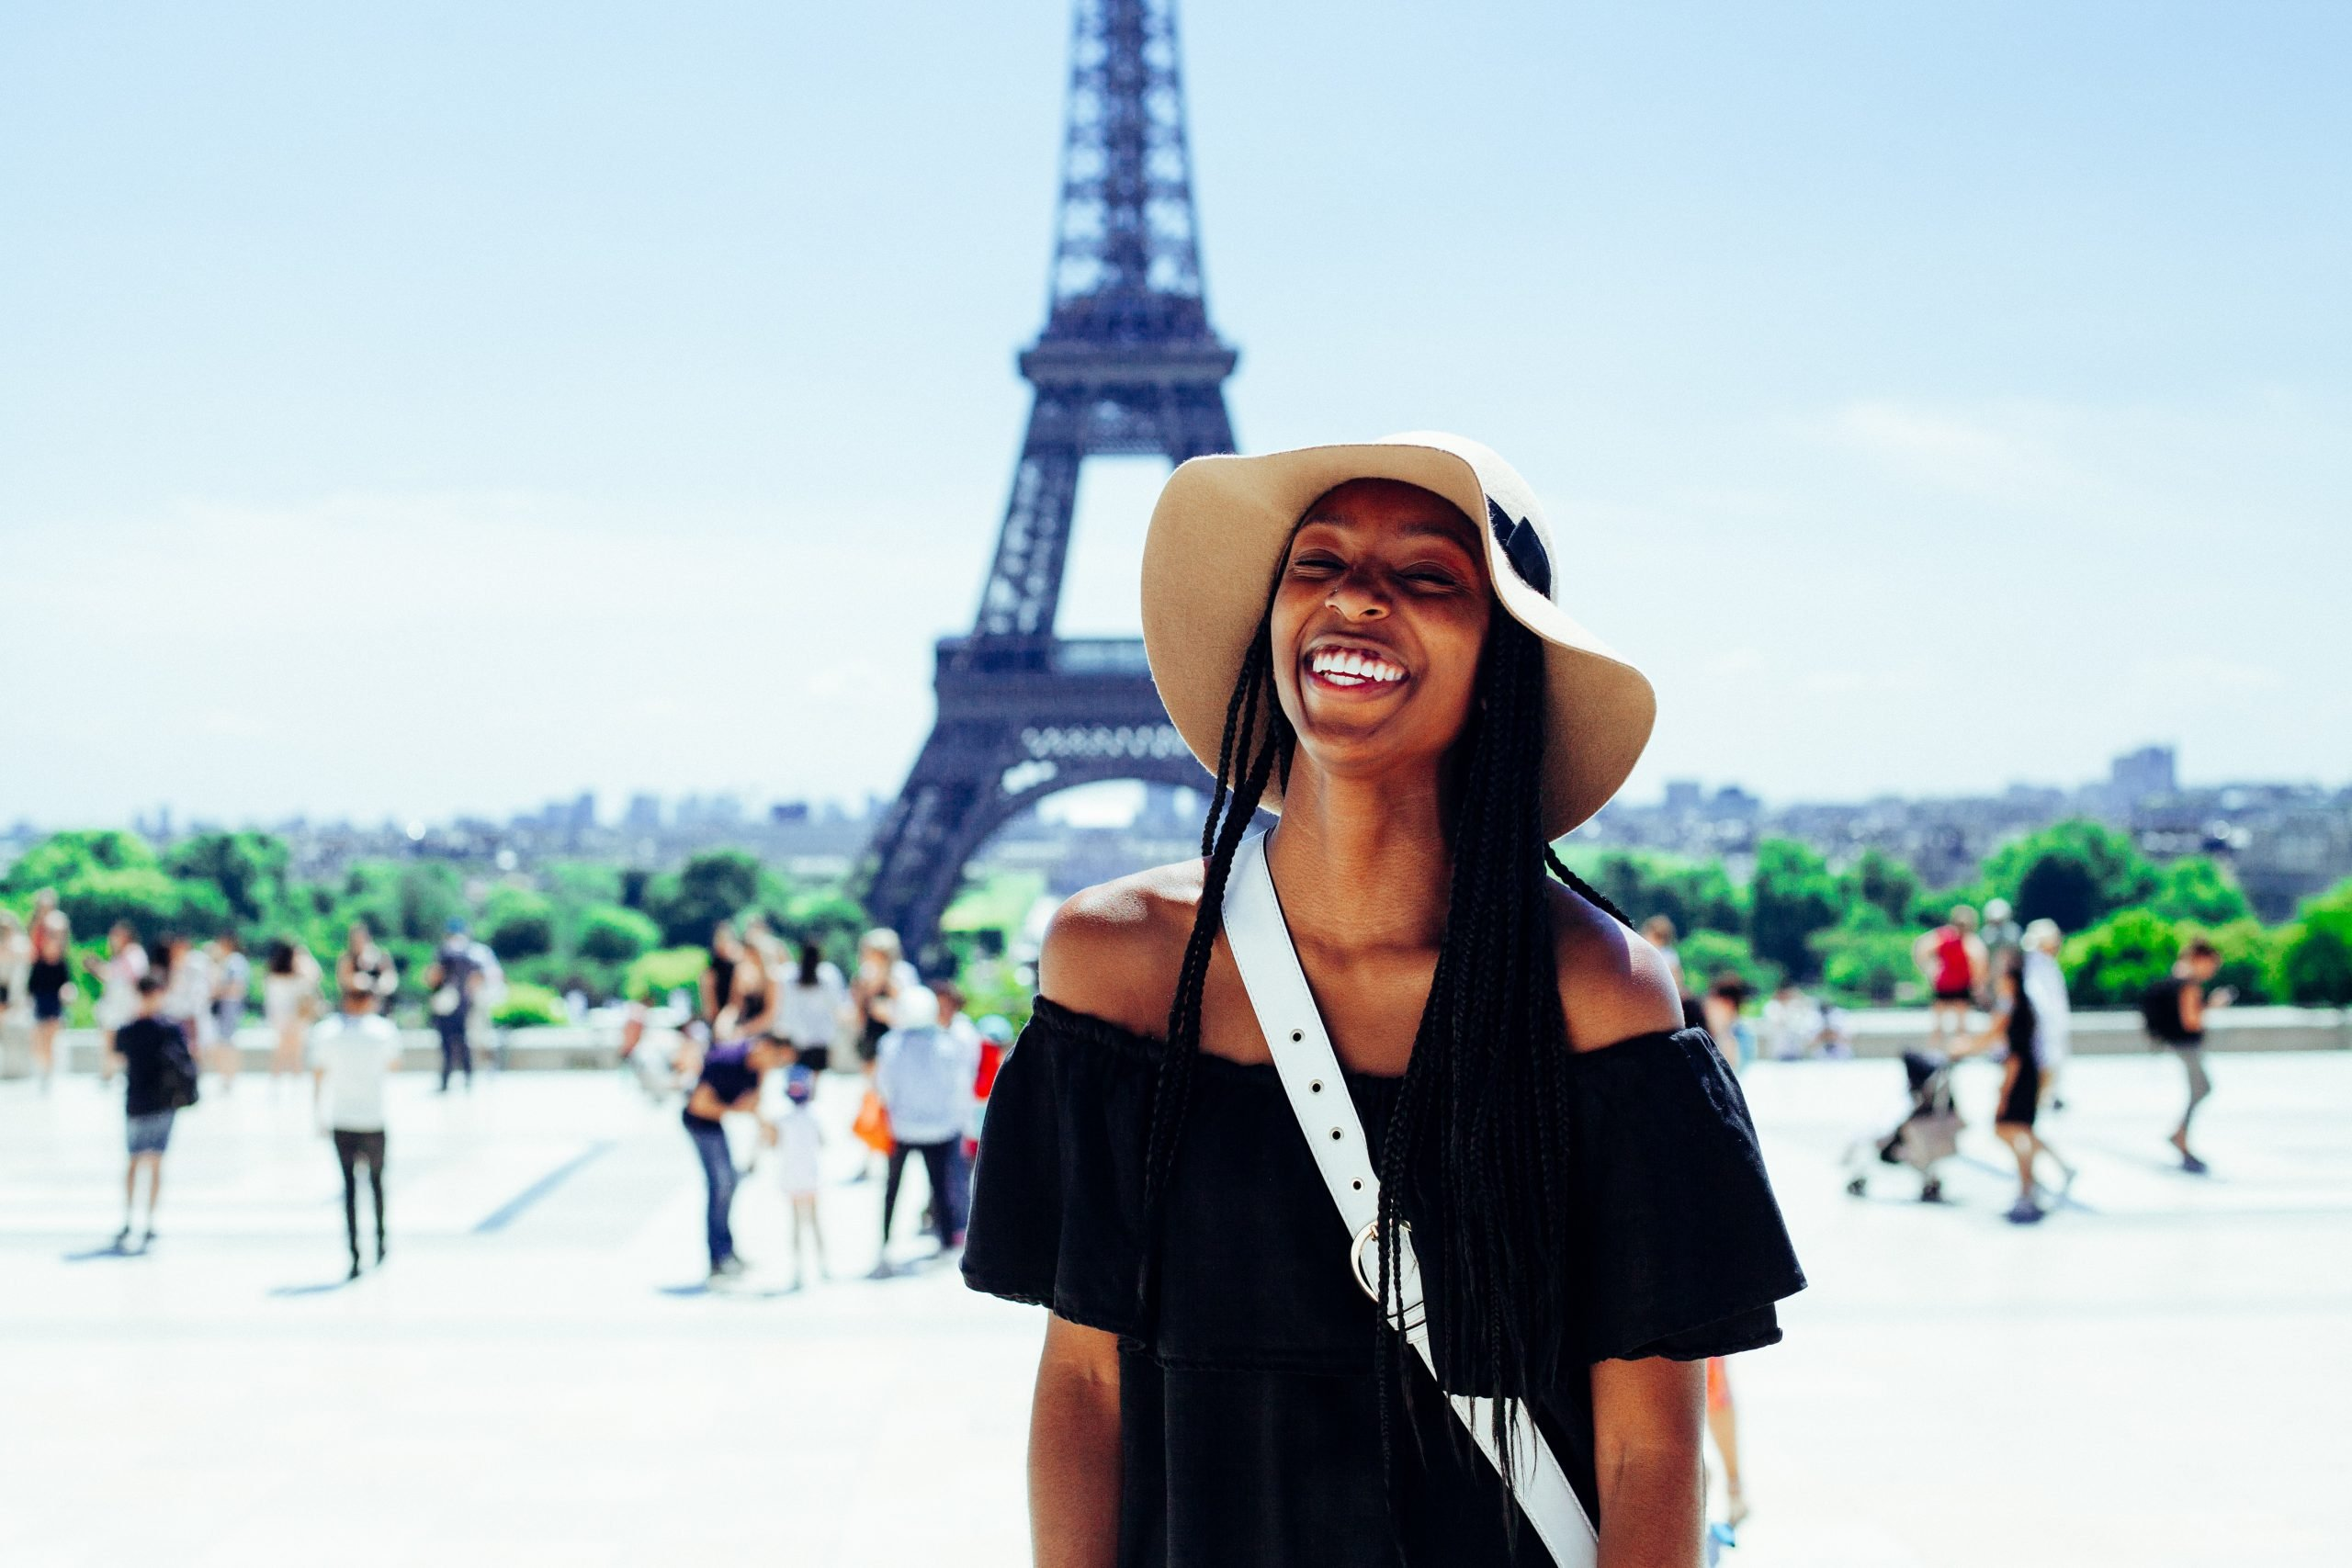 College Girl Smiling in front of the Eiffel Tower in Paris